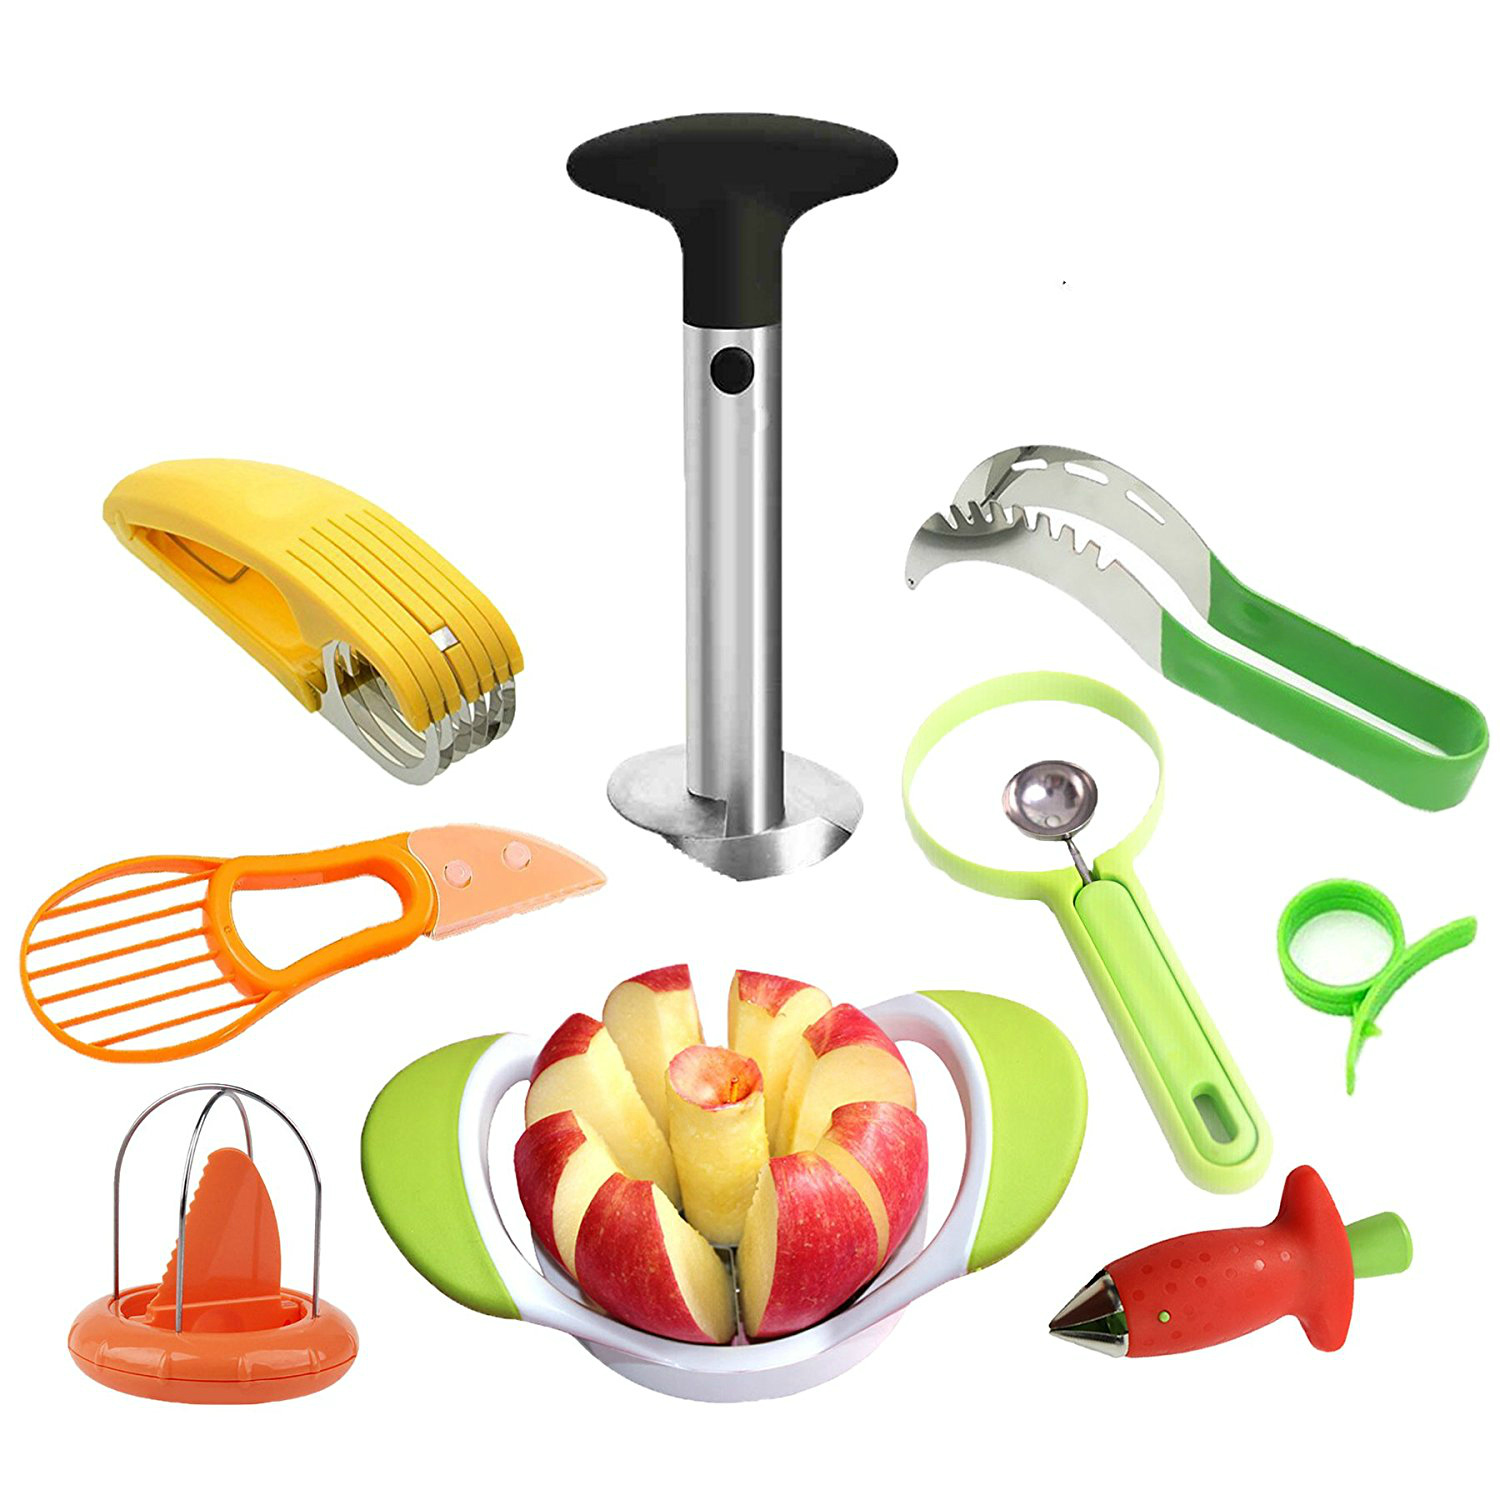 Every Tool You Need to Make Healthy Treats All Summer Long!